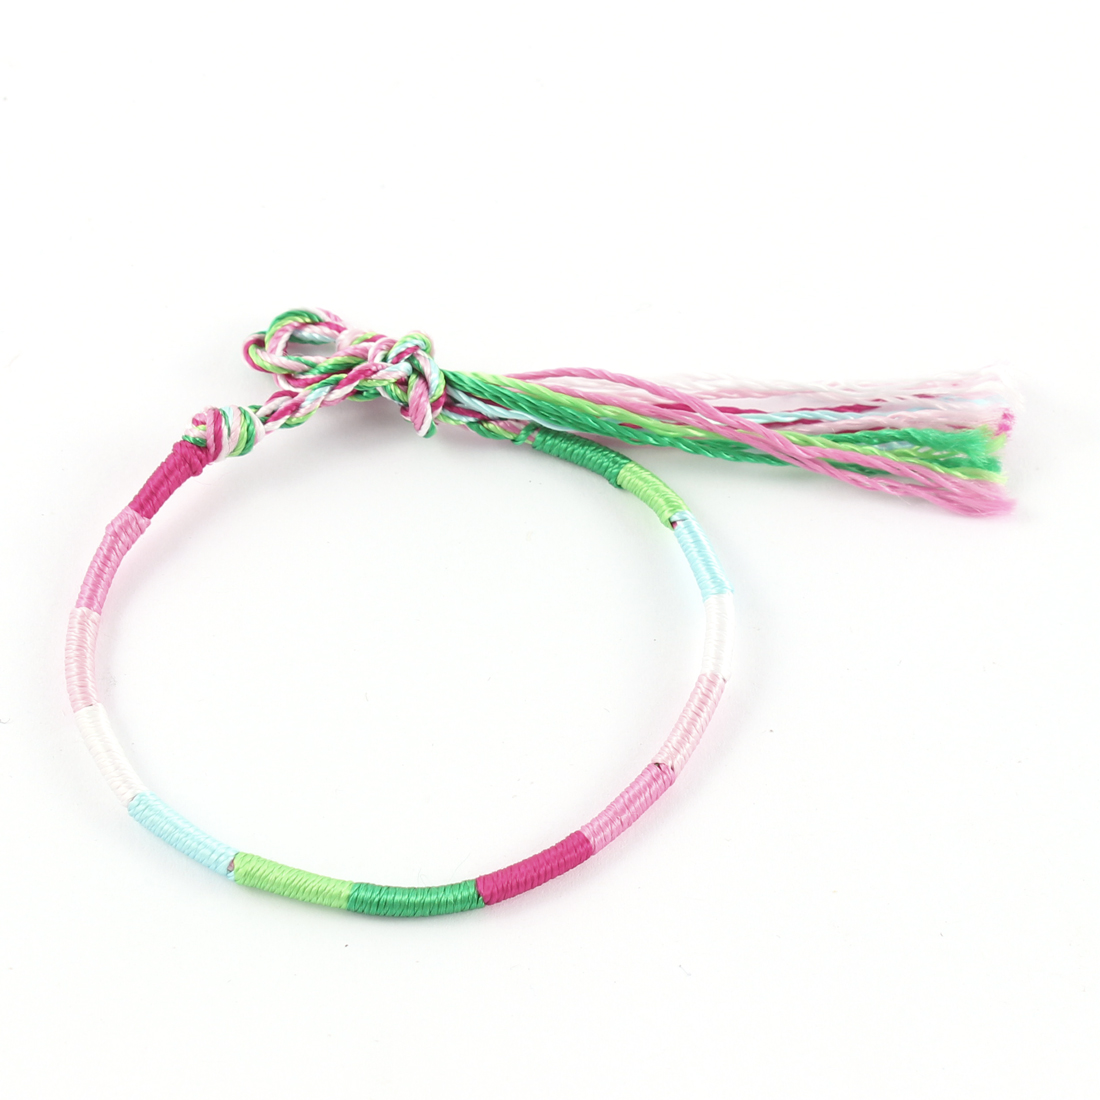 Lady Multicolor Hand Braided Knot Nylon Charm Wrist Bracelet